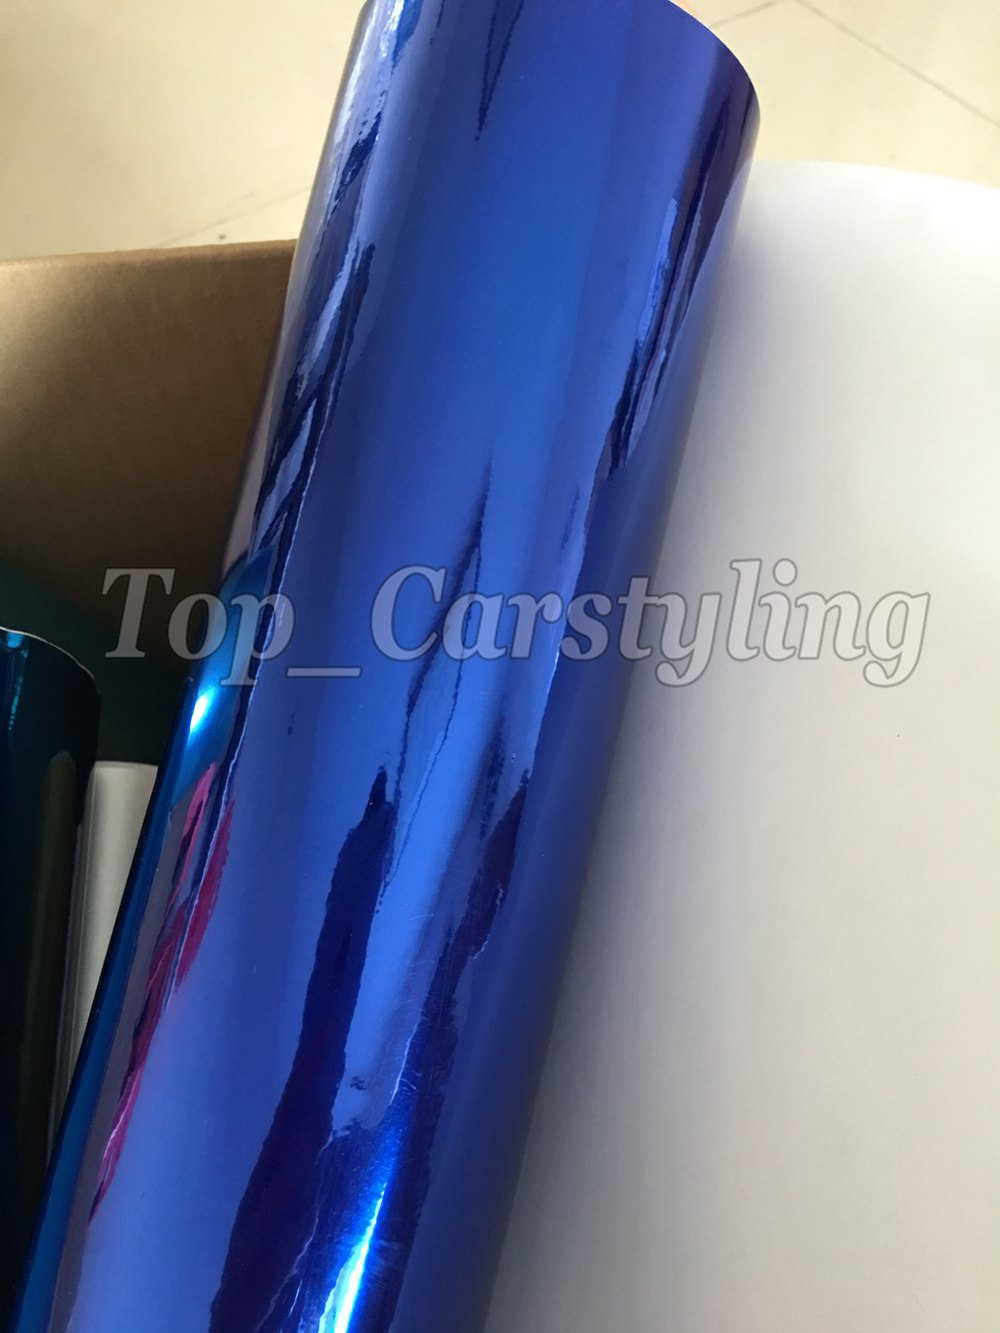 chrome blue mirror stm hexis car wrapping film high stretchable flexible (6)